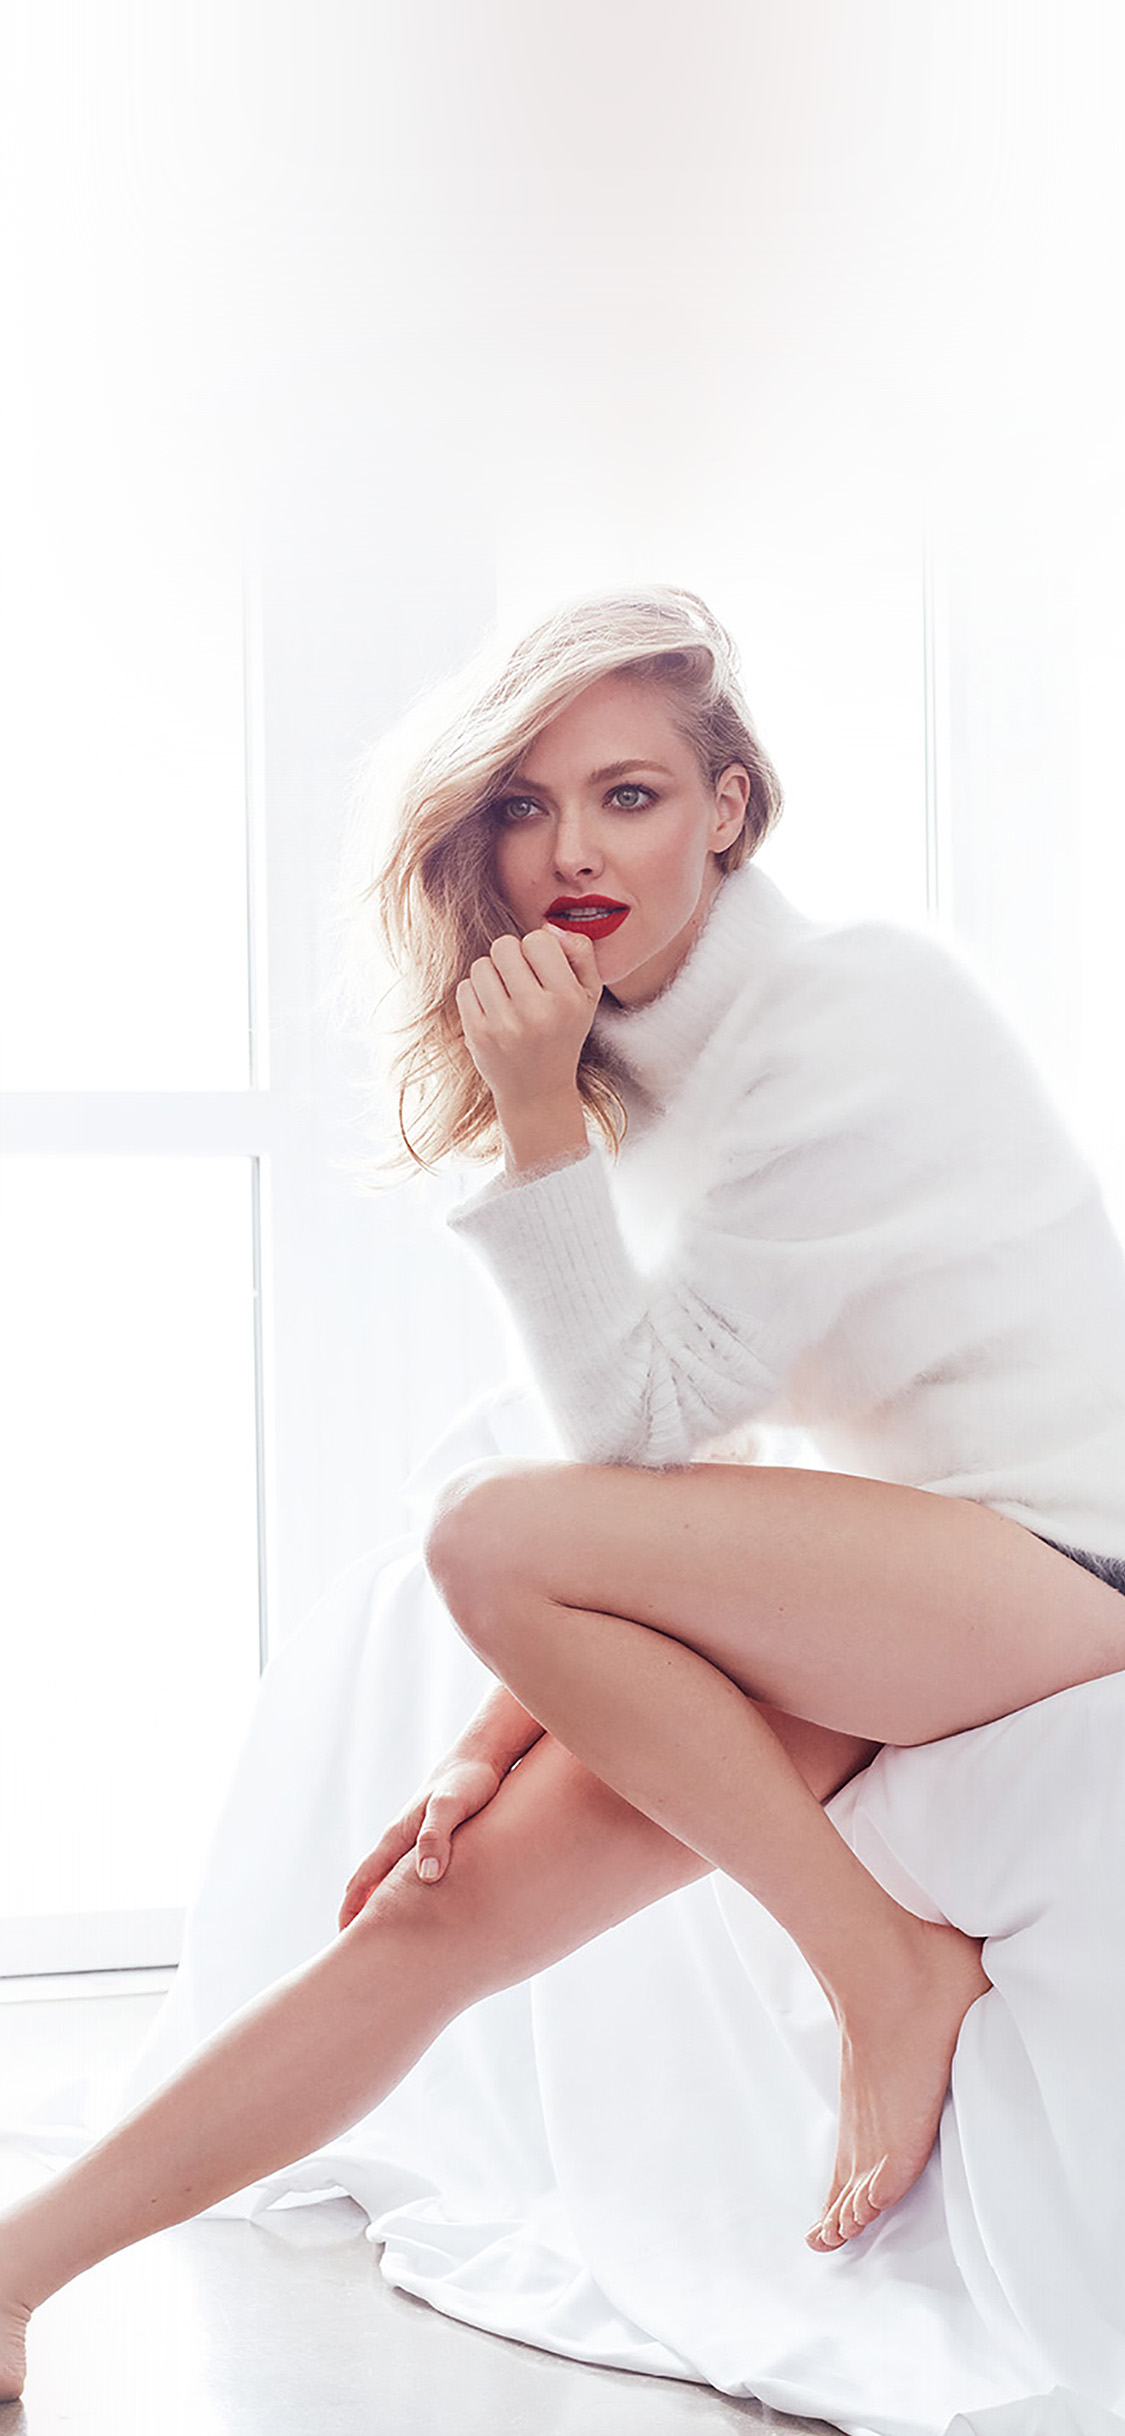 iPhoneXpapers.com-Apple-iPhone-wallpaper-ho37-amanda-seyfried-girl-white